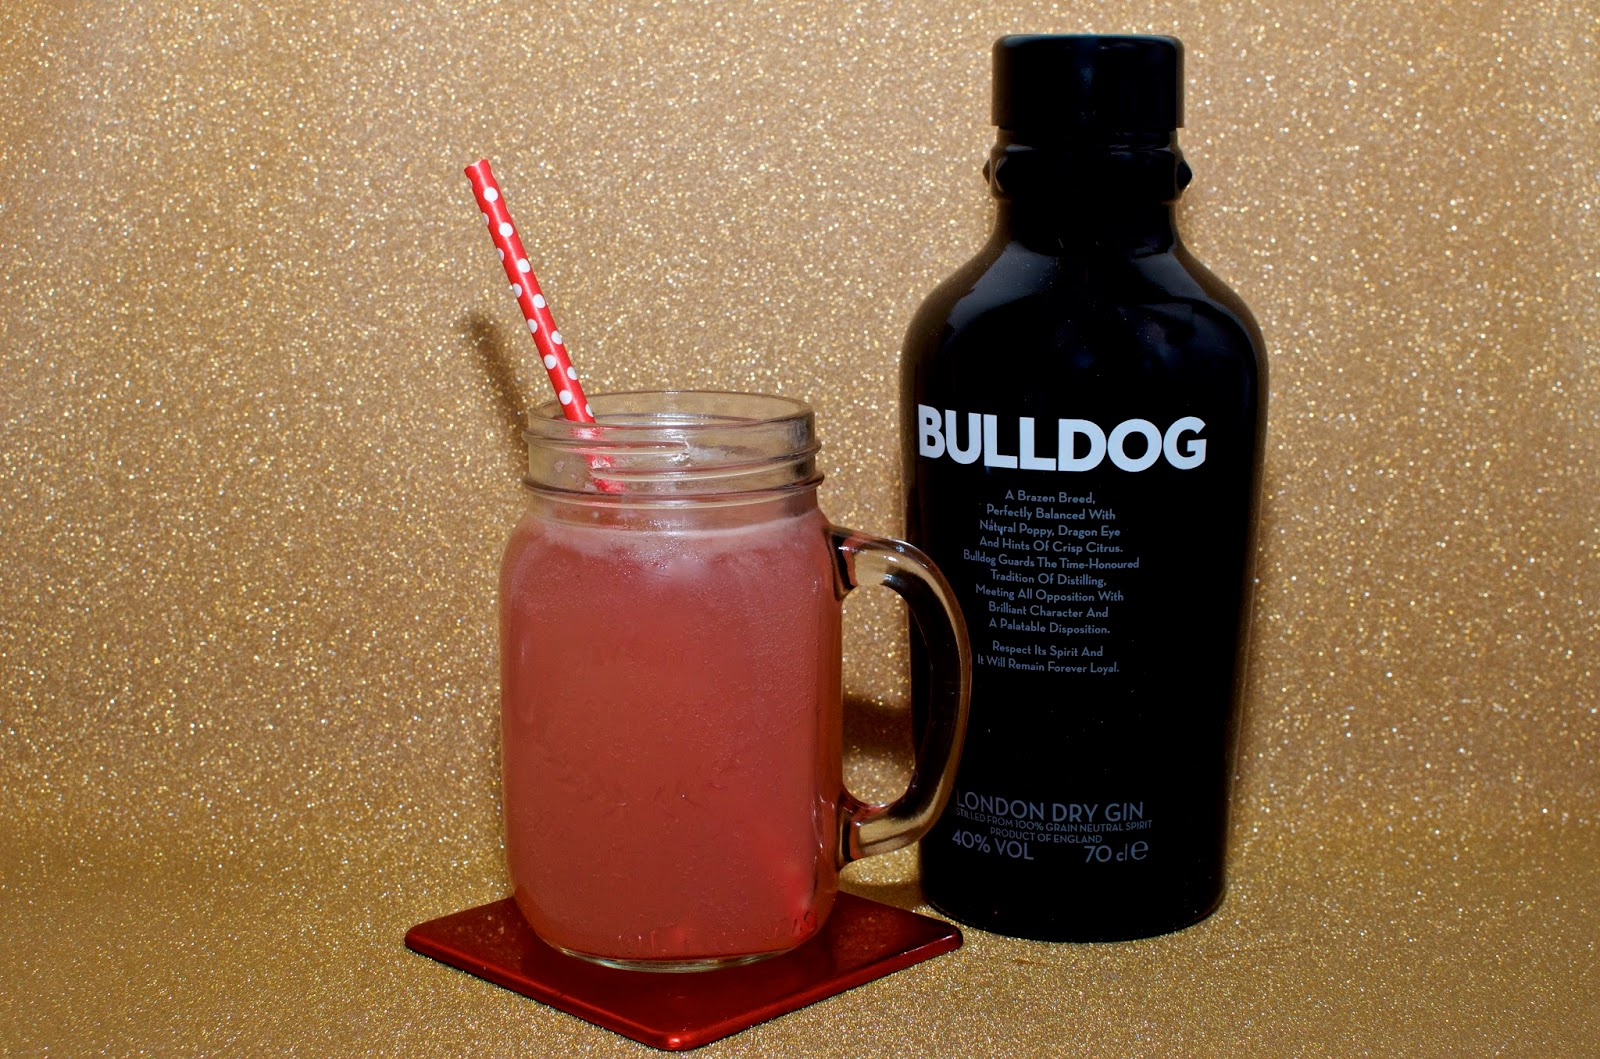 Pink cocktail and bottle of bulldog gin